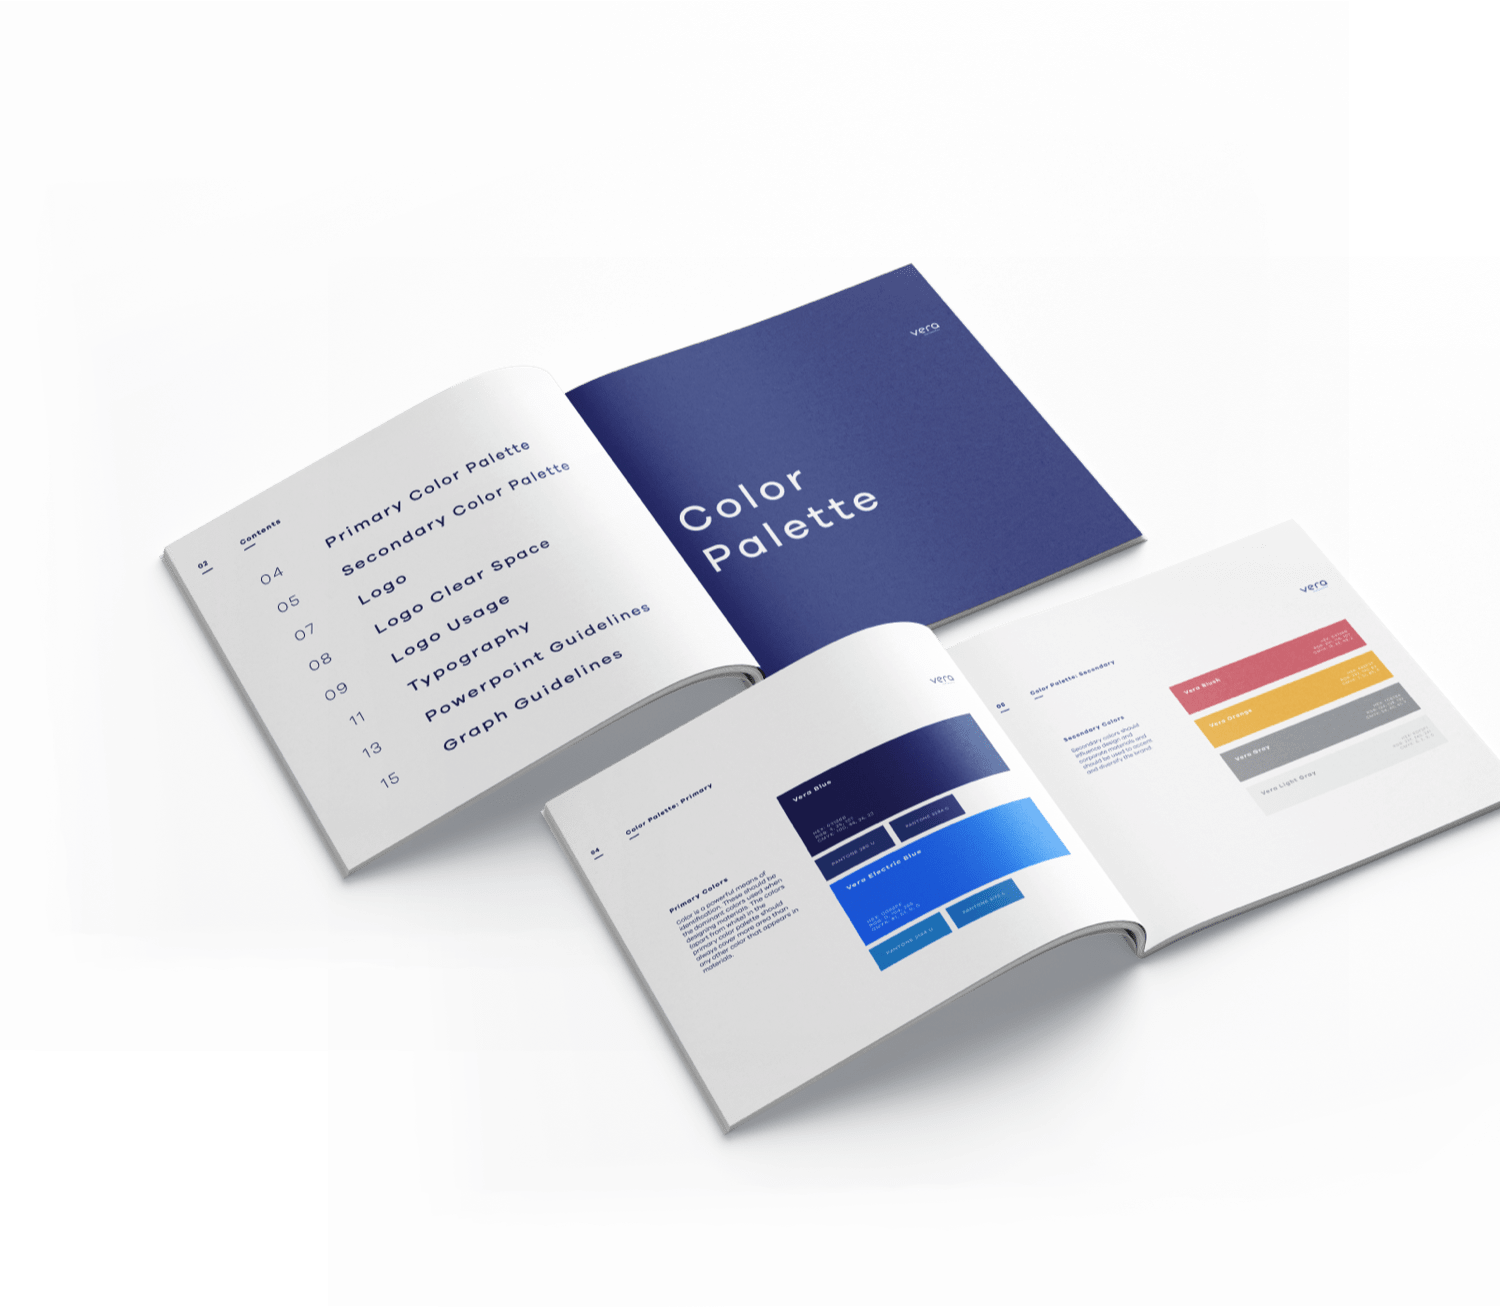 brand guide showing color palette pages